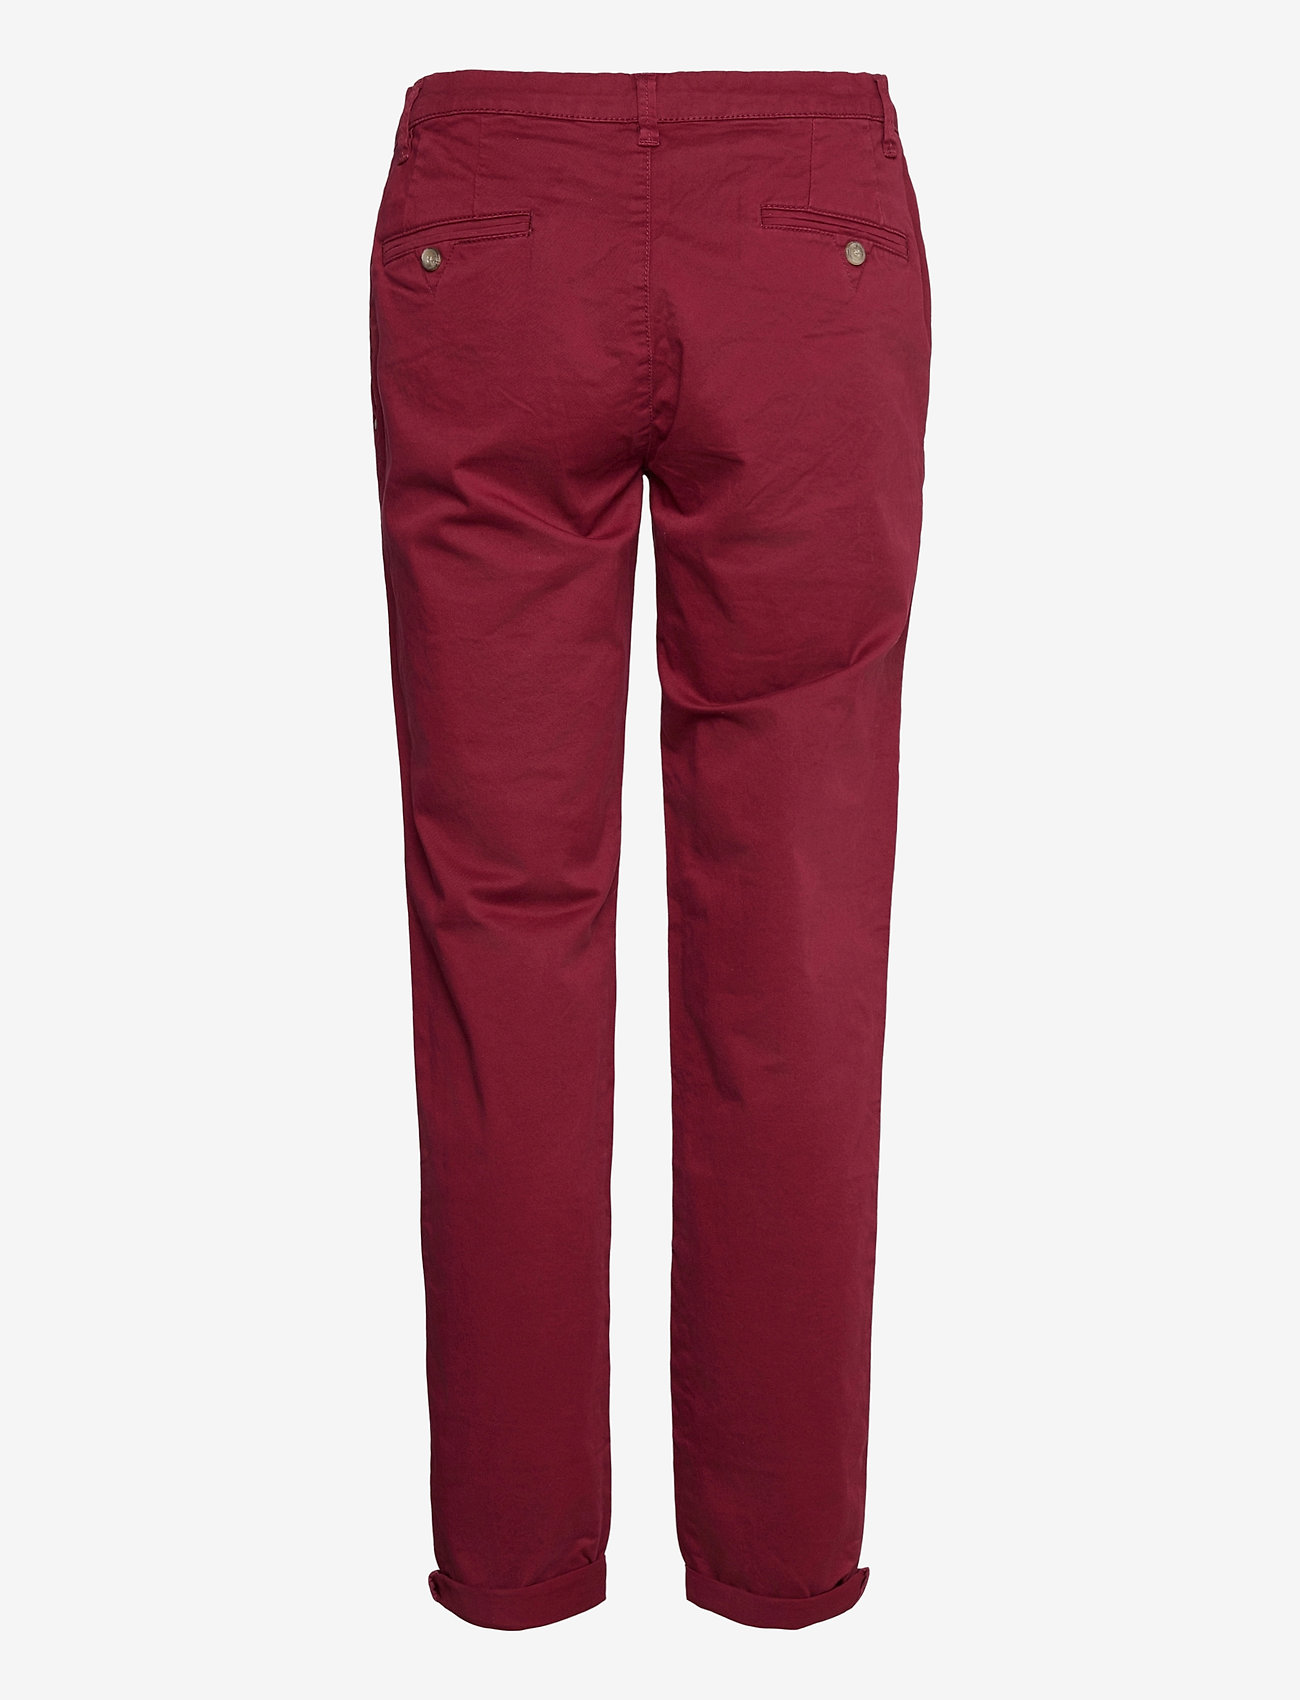 Esprit Casual - Pants woven - chinos - bordeaux red - 1